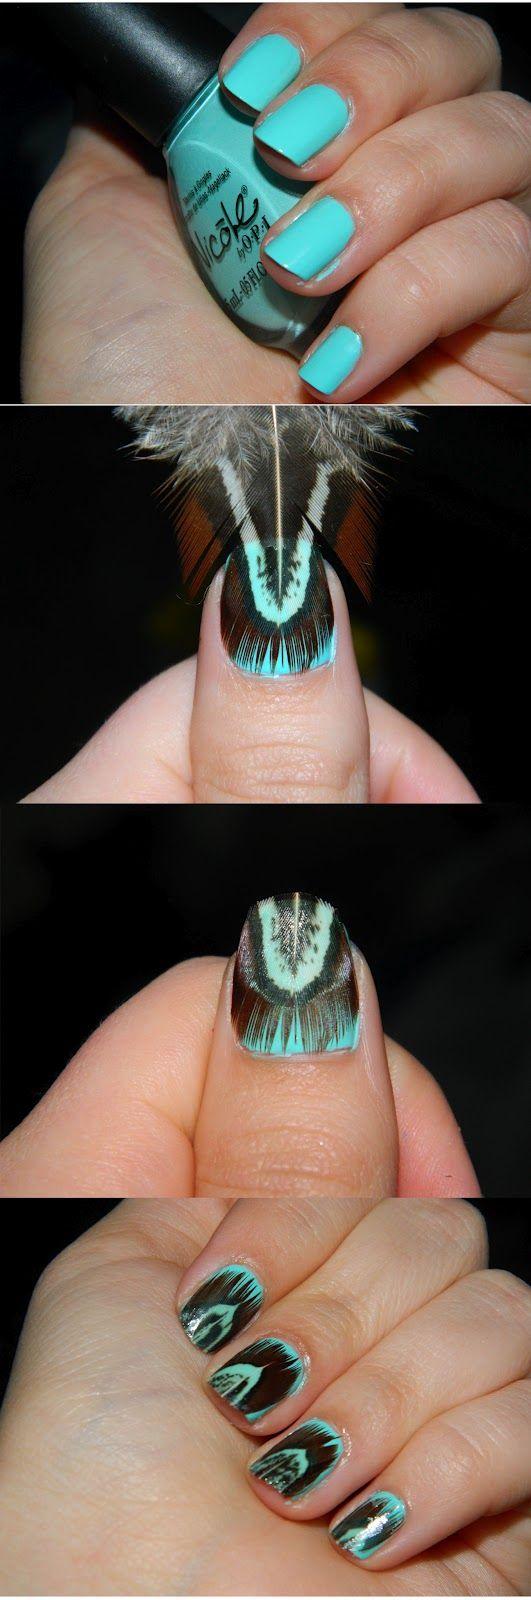 The Beauty Bandit: Feather Manicure